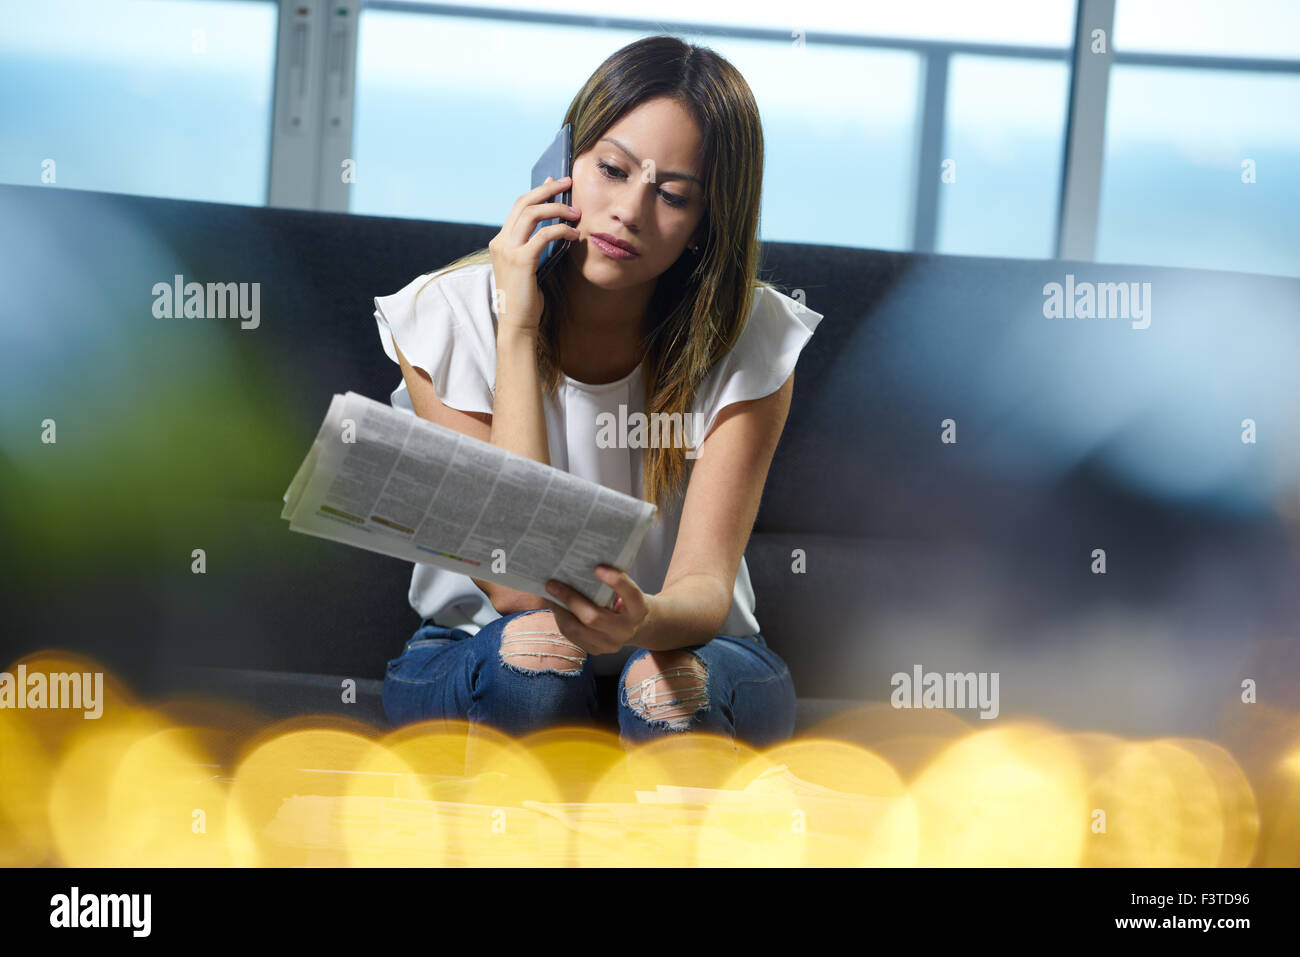 Young unemployed female doing job hunting and reading employment announcements. The girl is sitting on her sofa - Stock Image